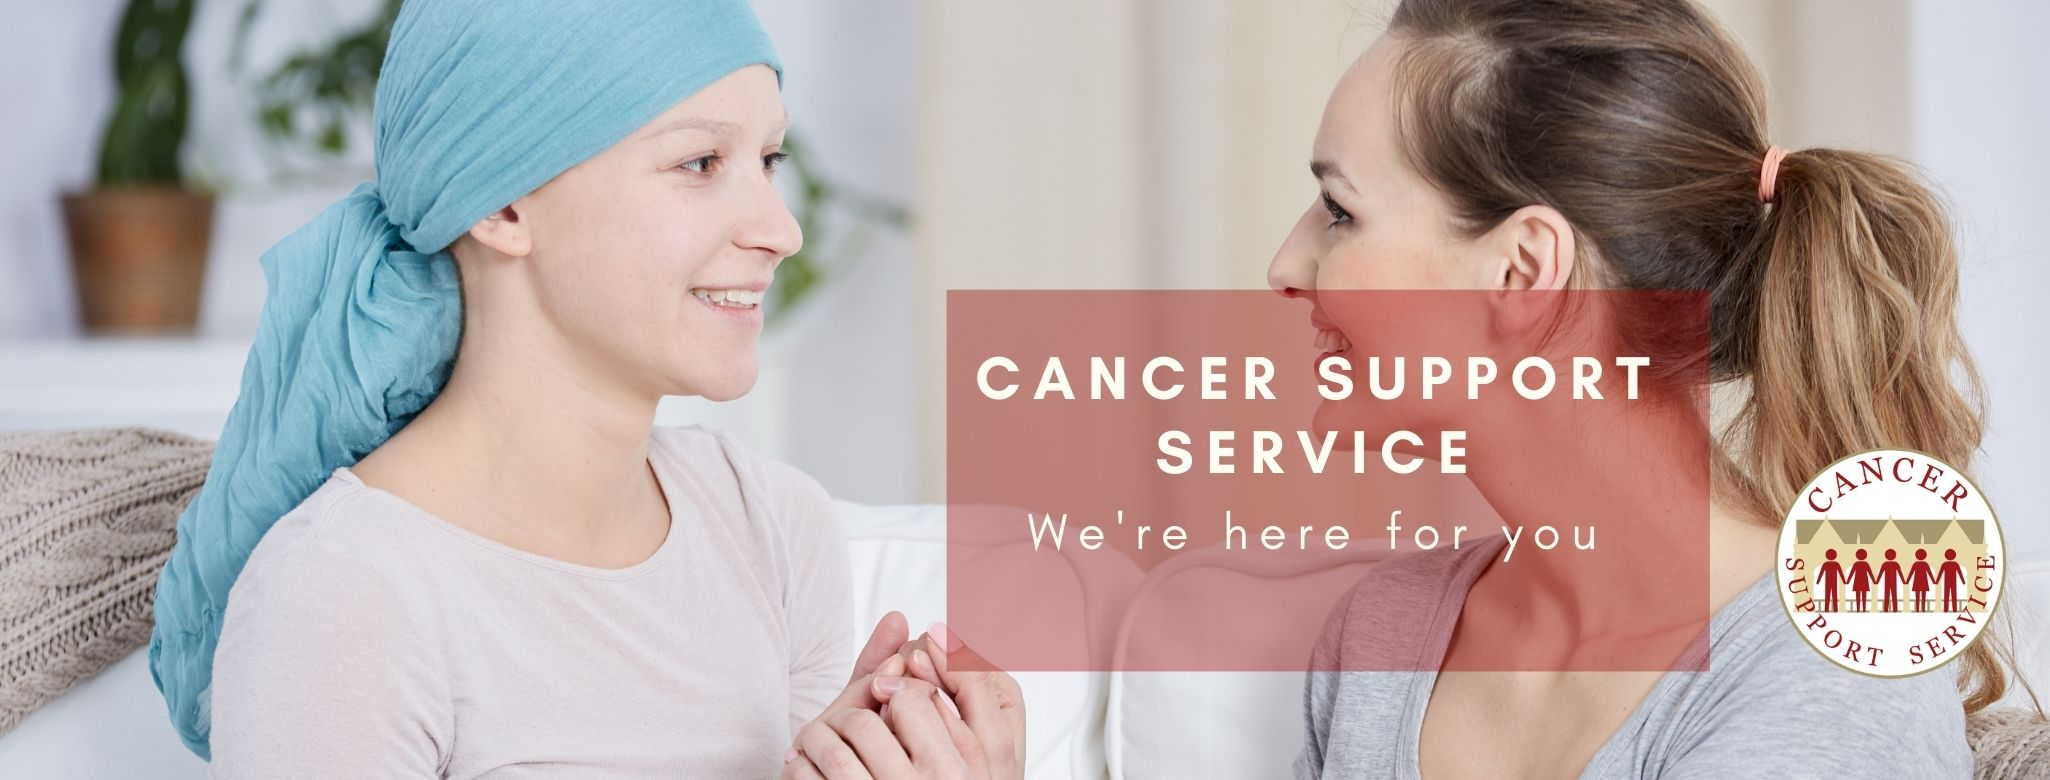 Cancer Support Service